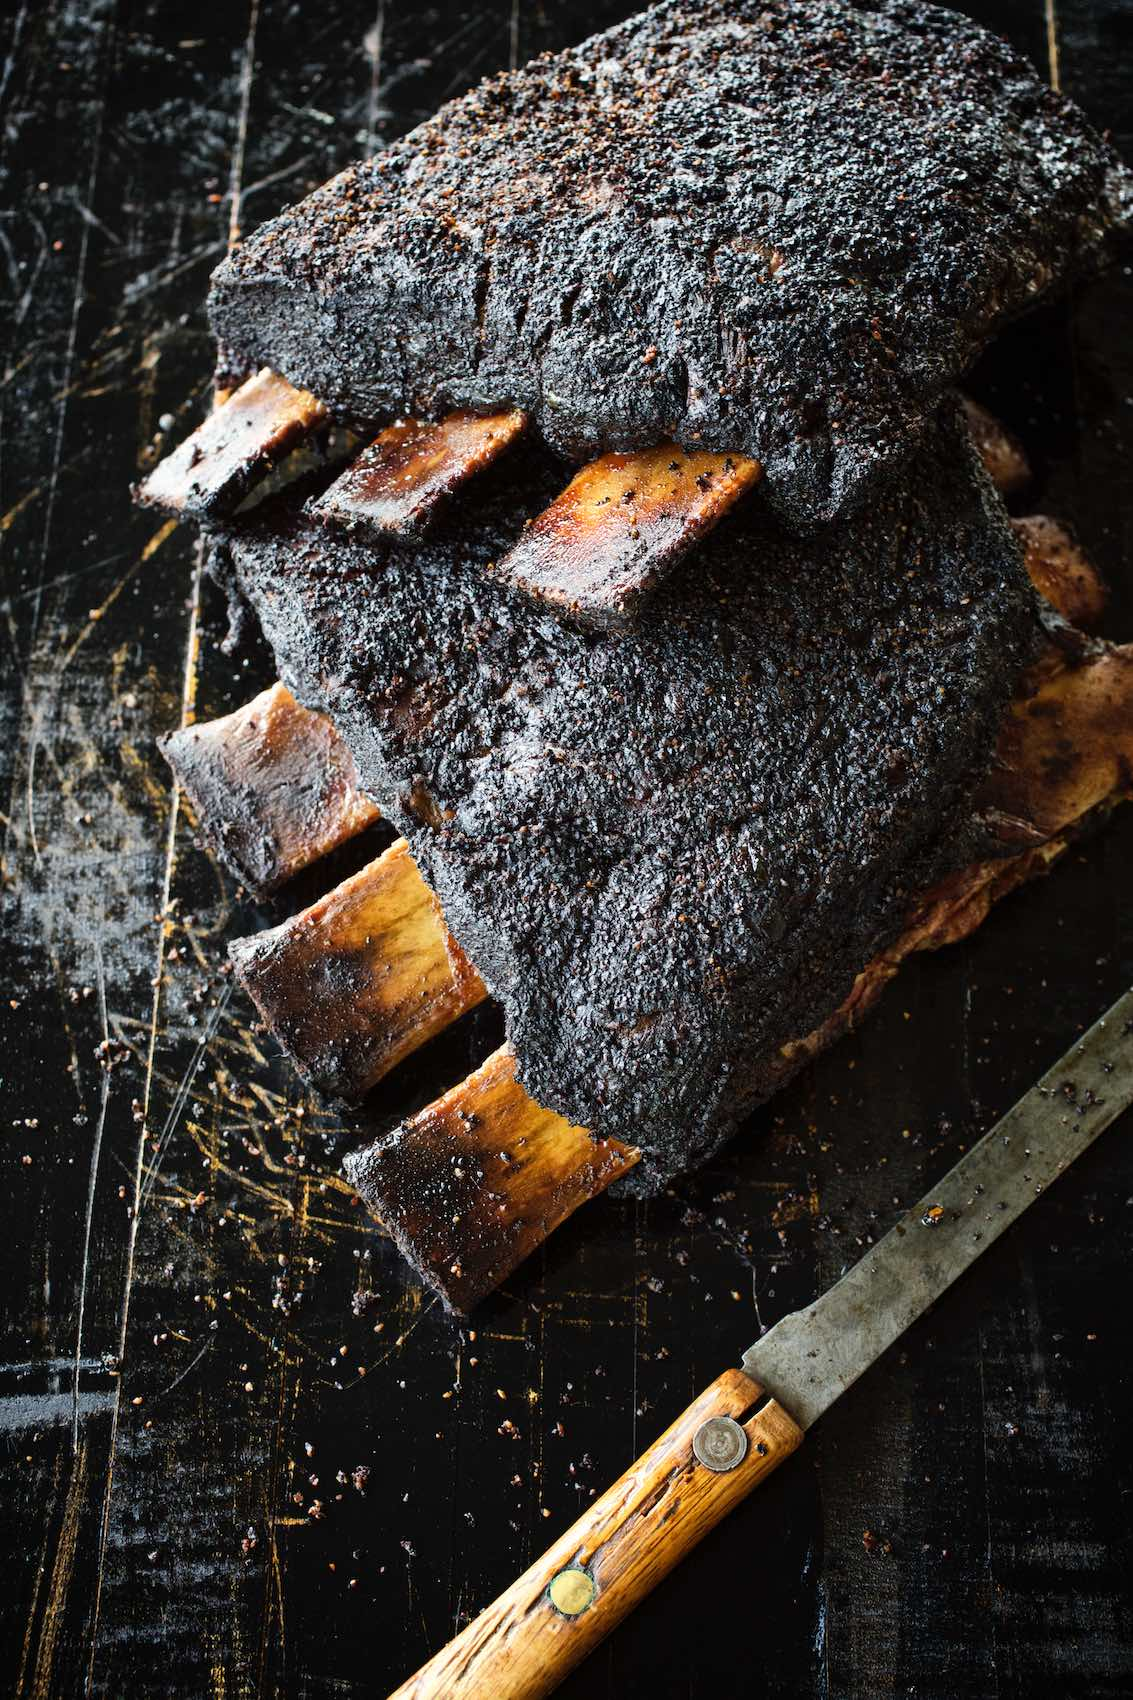 Jody Horton Photography - Blackened ribs on cutting board with rustic knife.